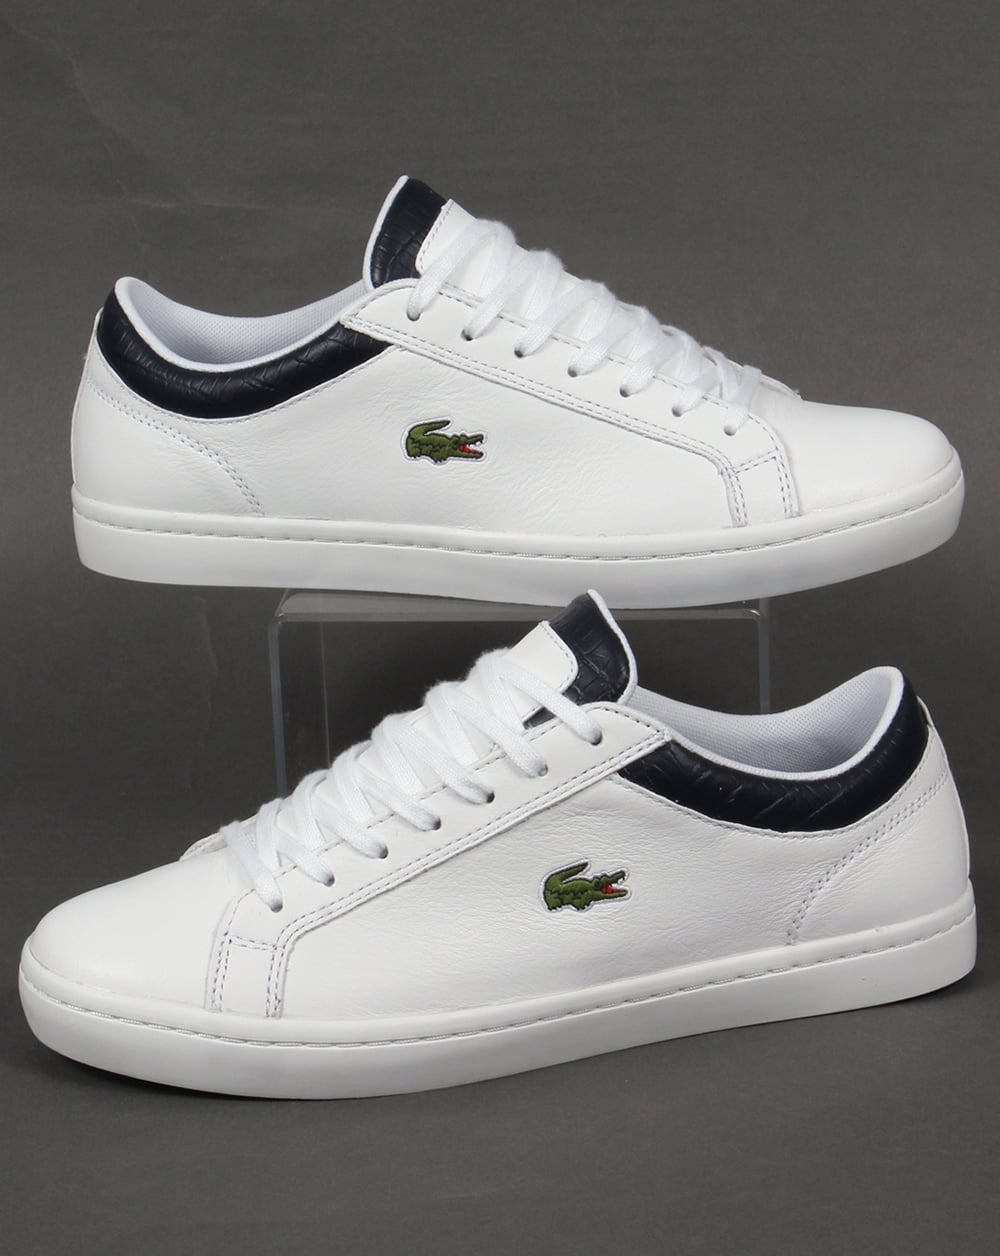 292755f21 Lacoste Lacoste Straightset Trainers White Navy